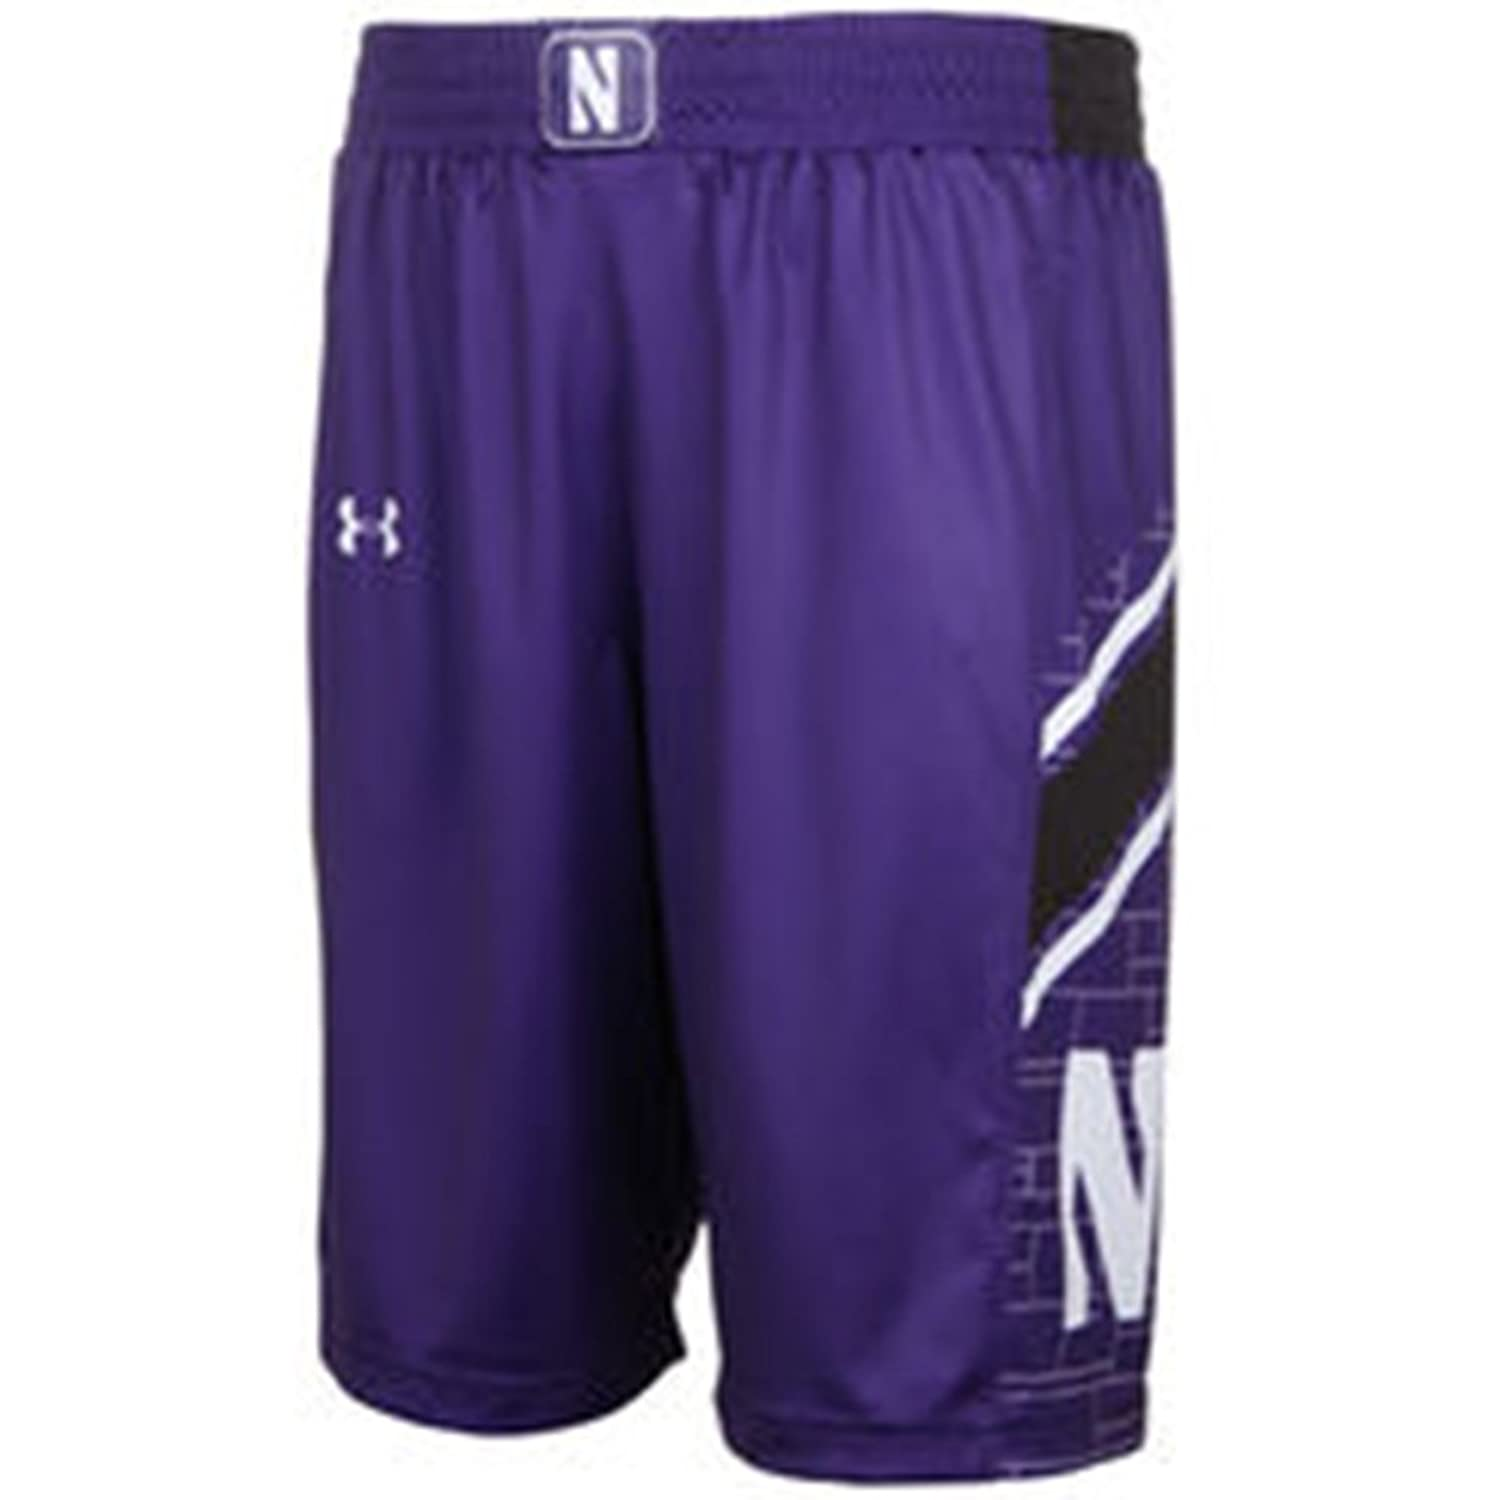 Northwestern Wildcats Under Armour Youth Game Shorts